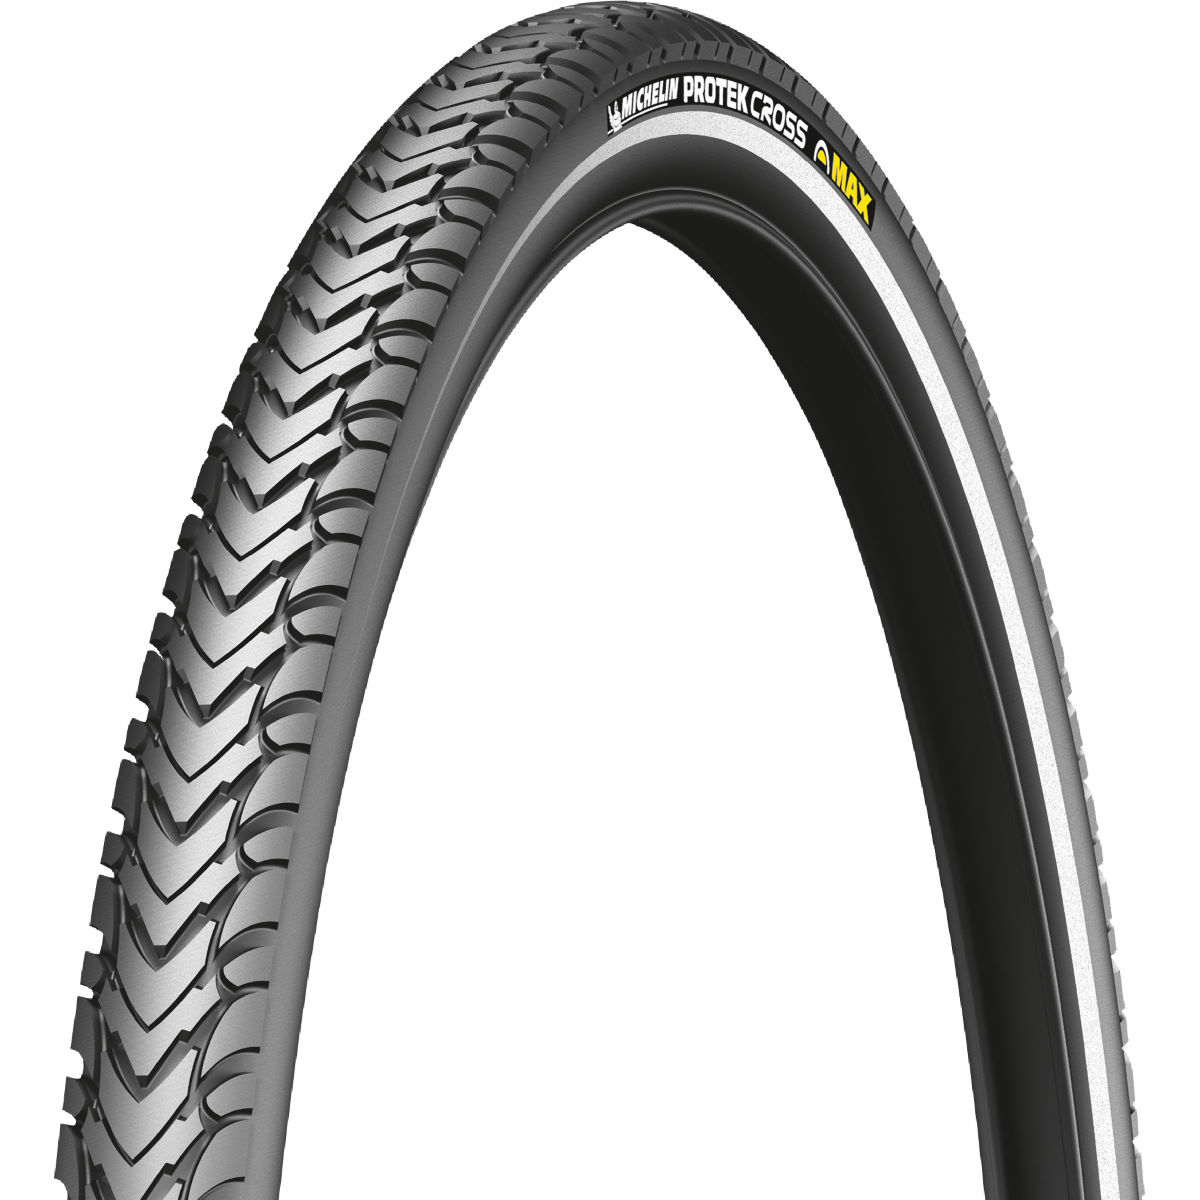 MICHELIN Michelin ProTek Cross Max Touring Tyre   Tyres